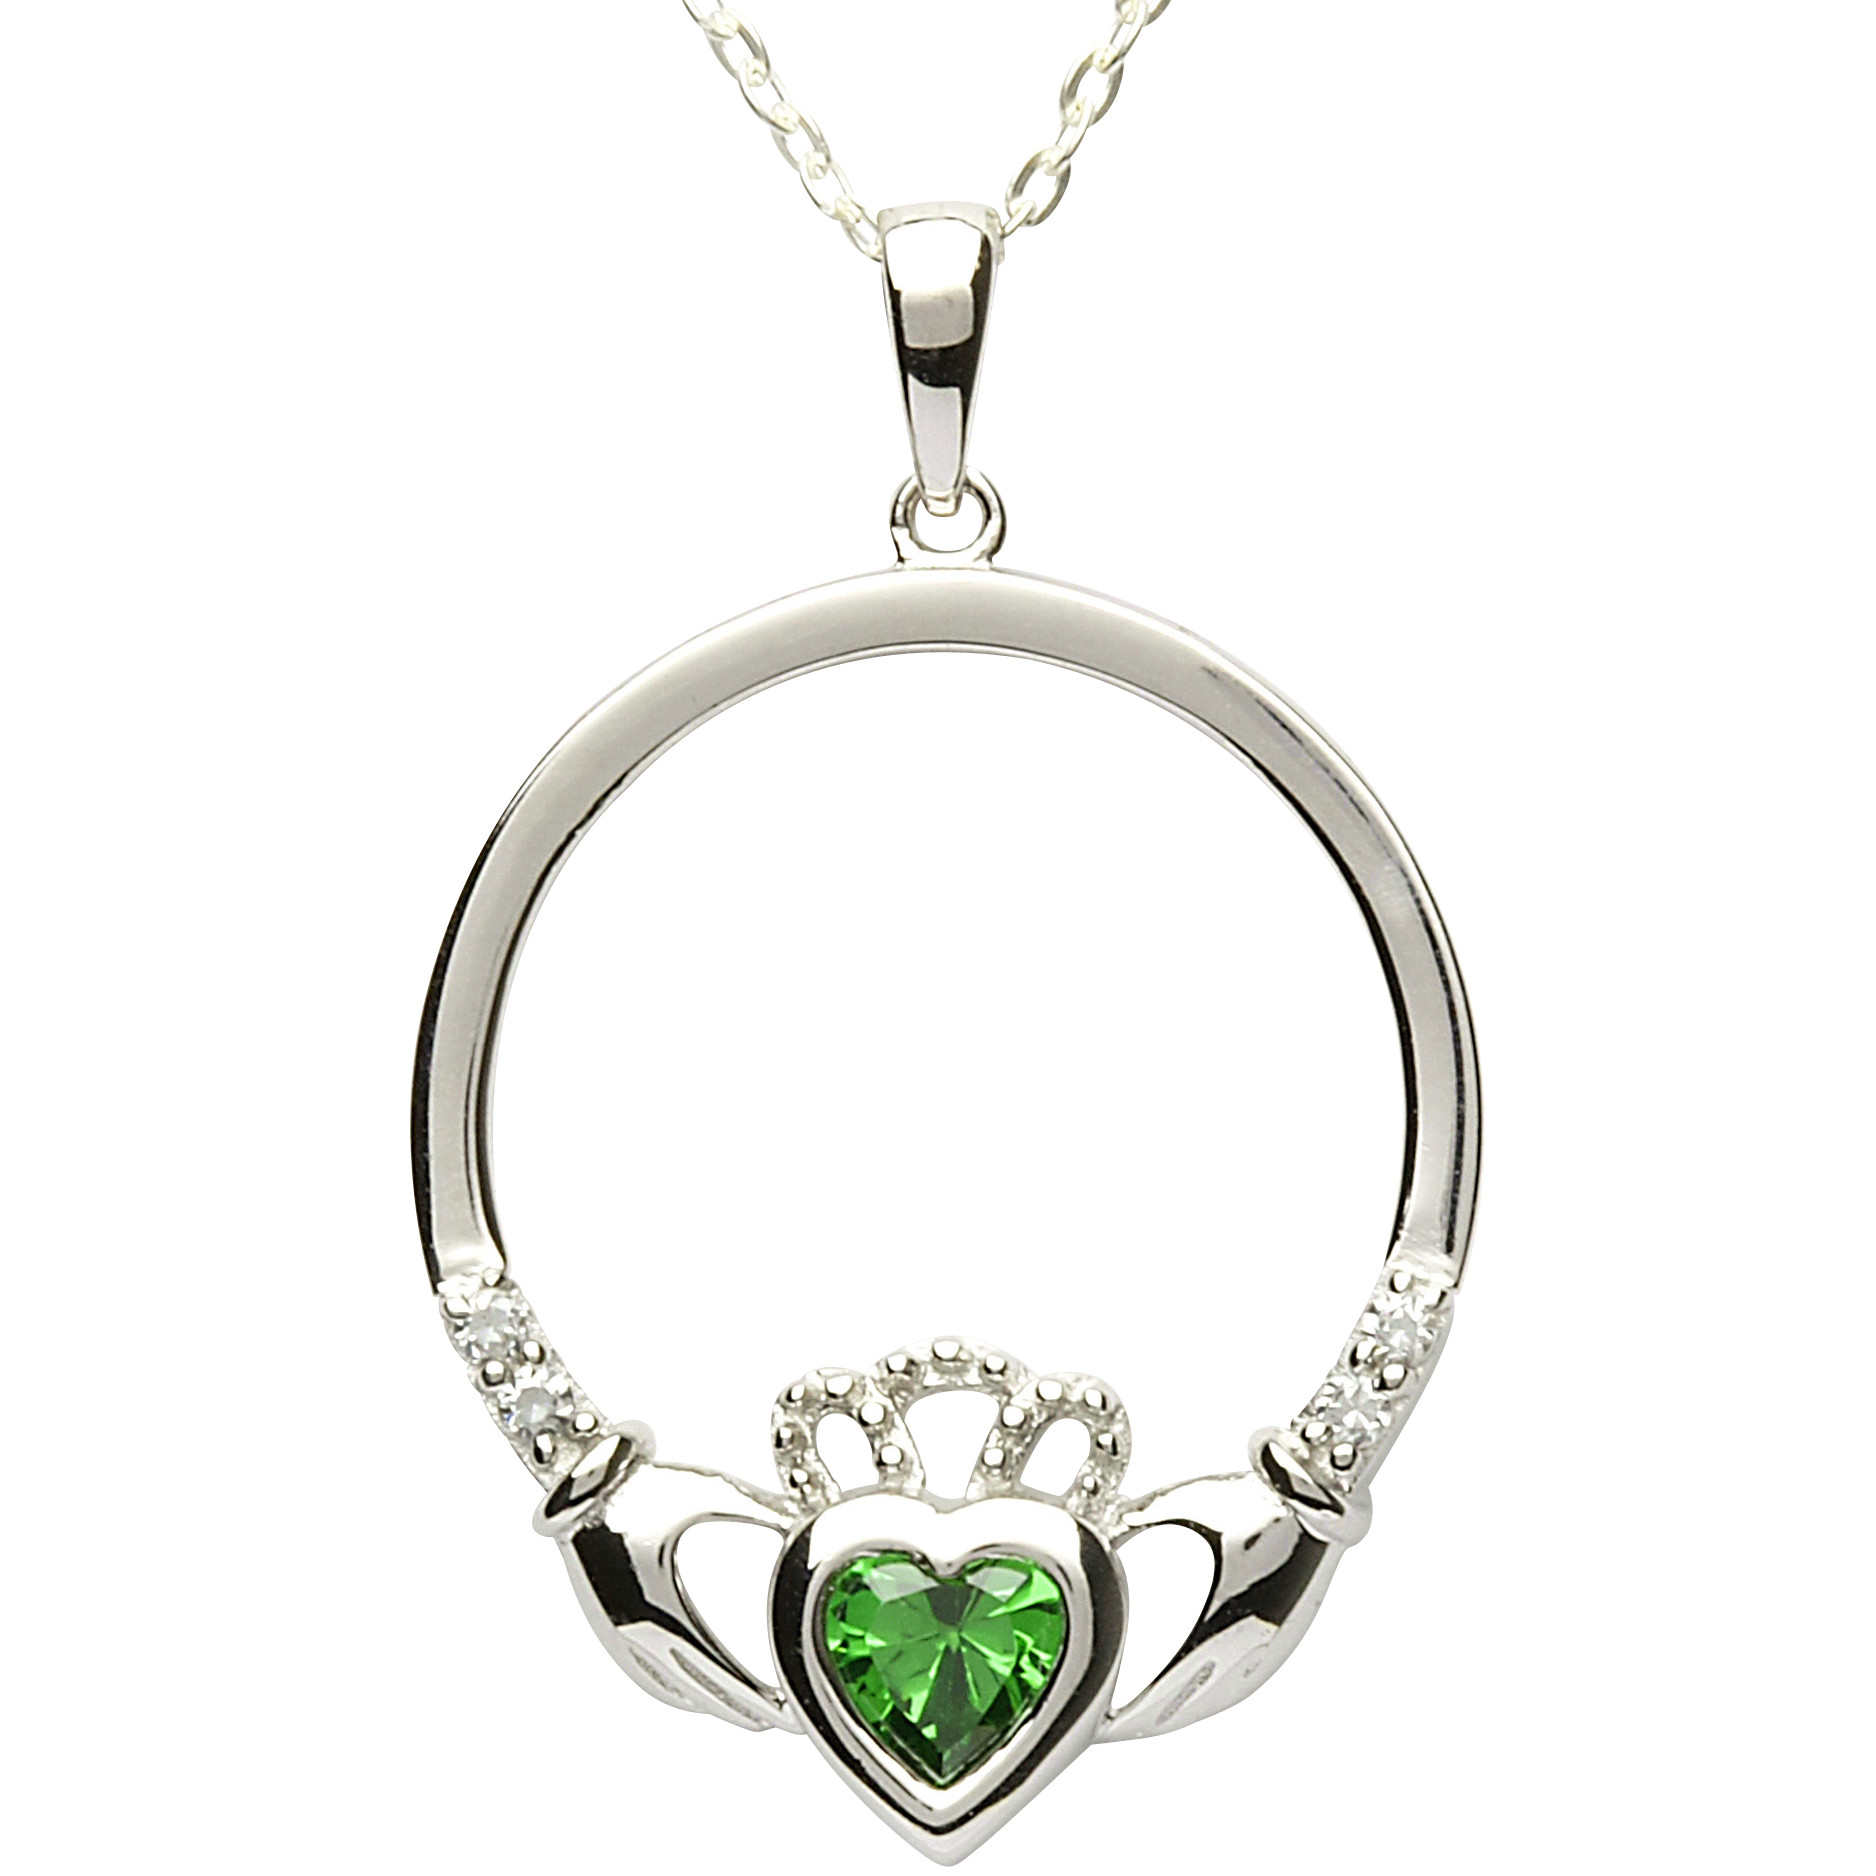 birthstone december diamond topaz necklace pendant claddagh silver